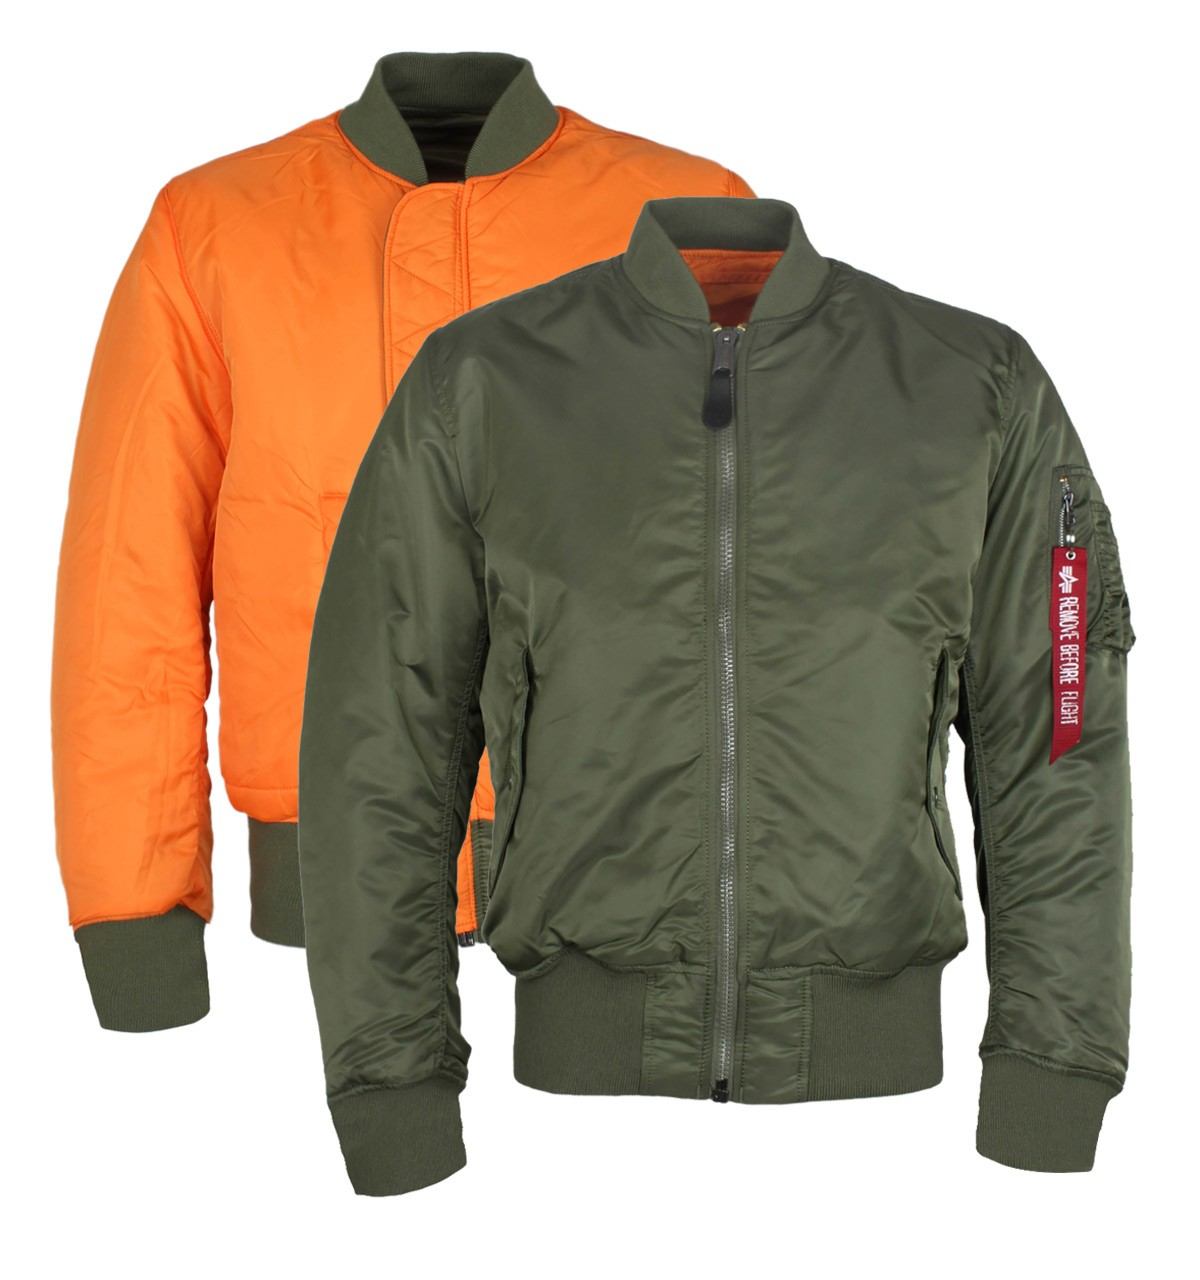 Original Flight Jackets CjPDFG